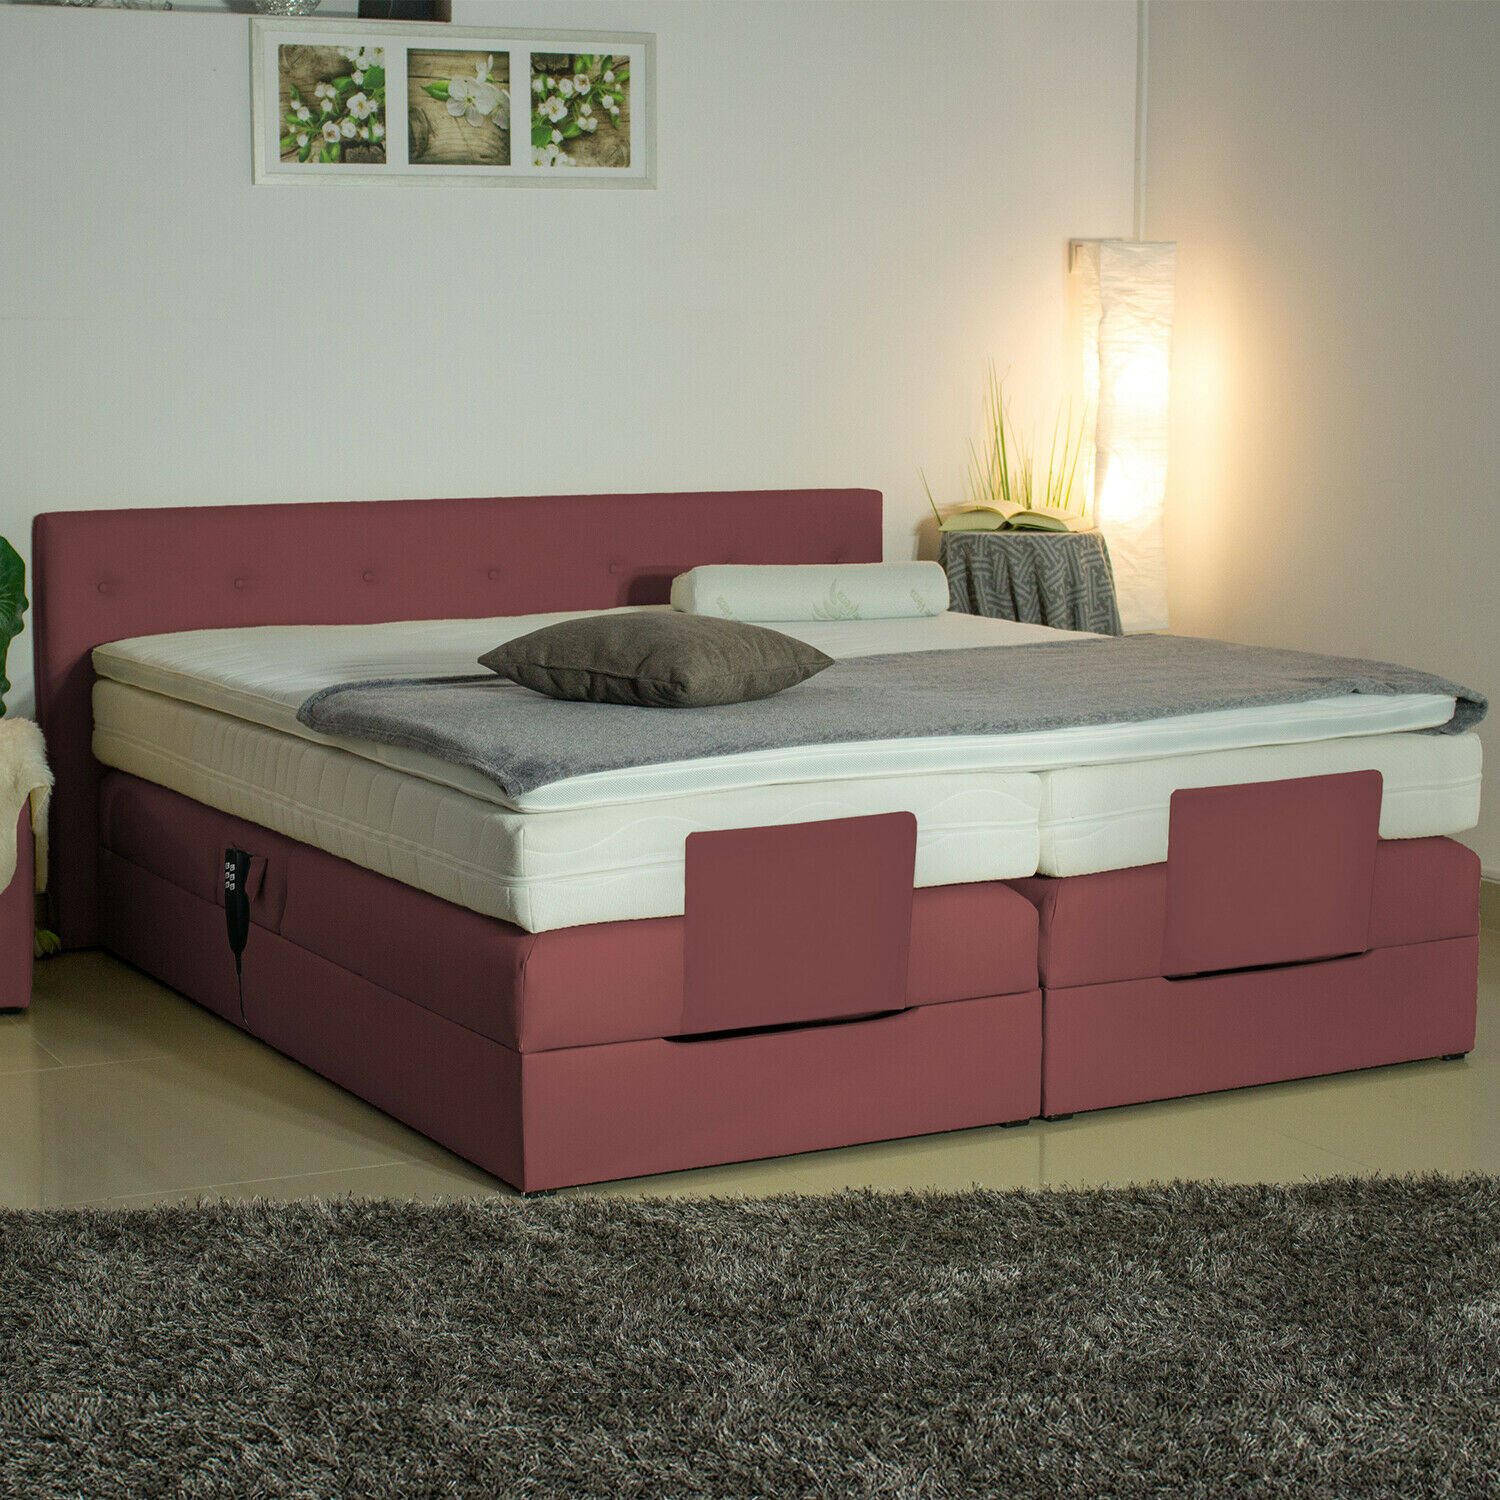 boxspringbett motor verstellbar direkt ab fabrik elektrisch mit farbwahl 200 eur 778 00. Black Bedroom Furniture Sets. Home Design Ideas